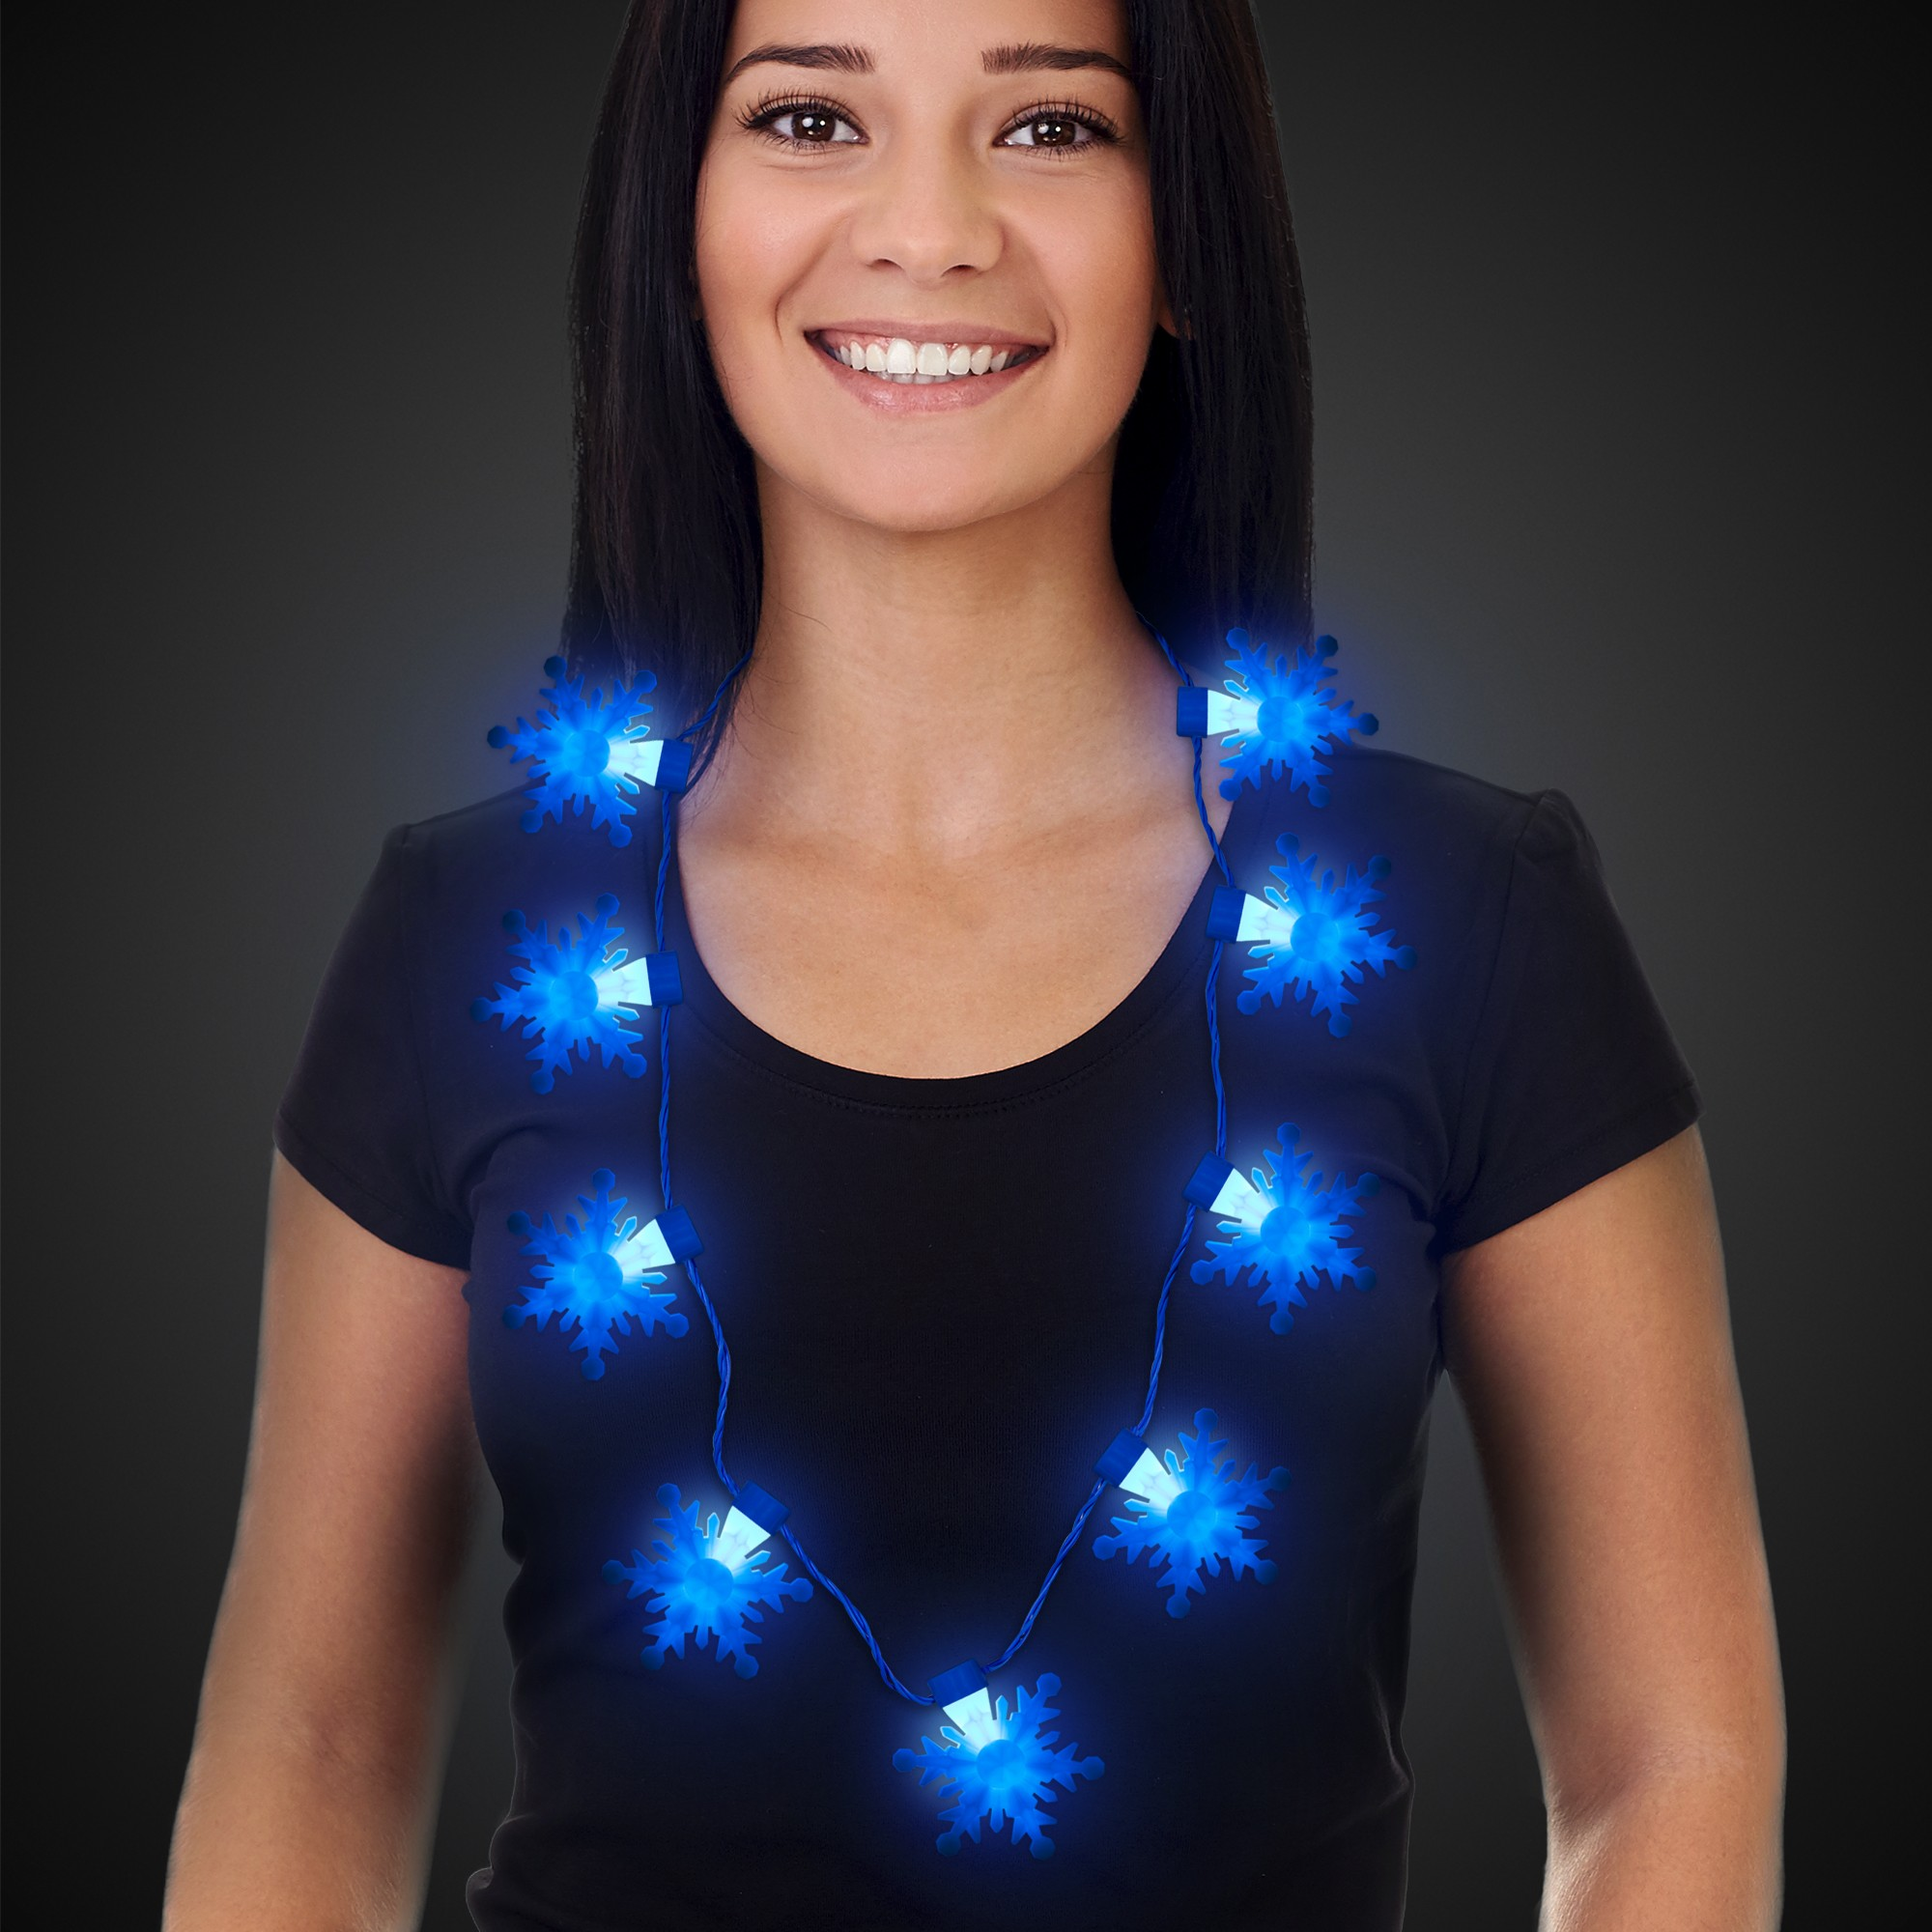 LED Snowflake Necklace